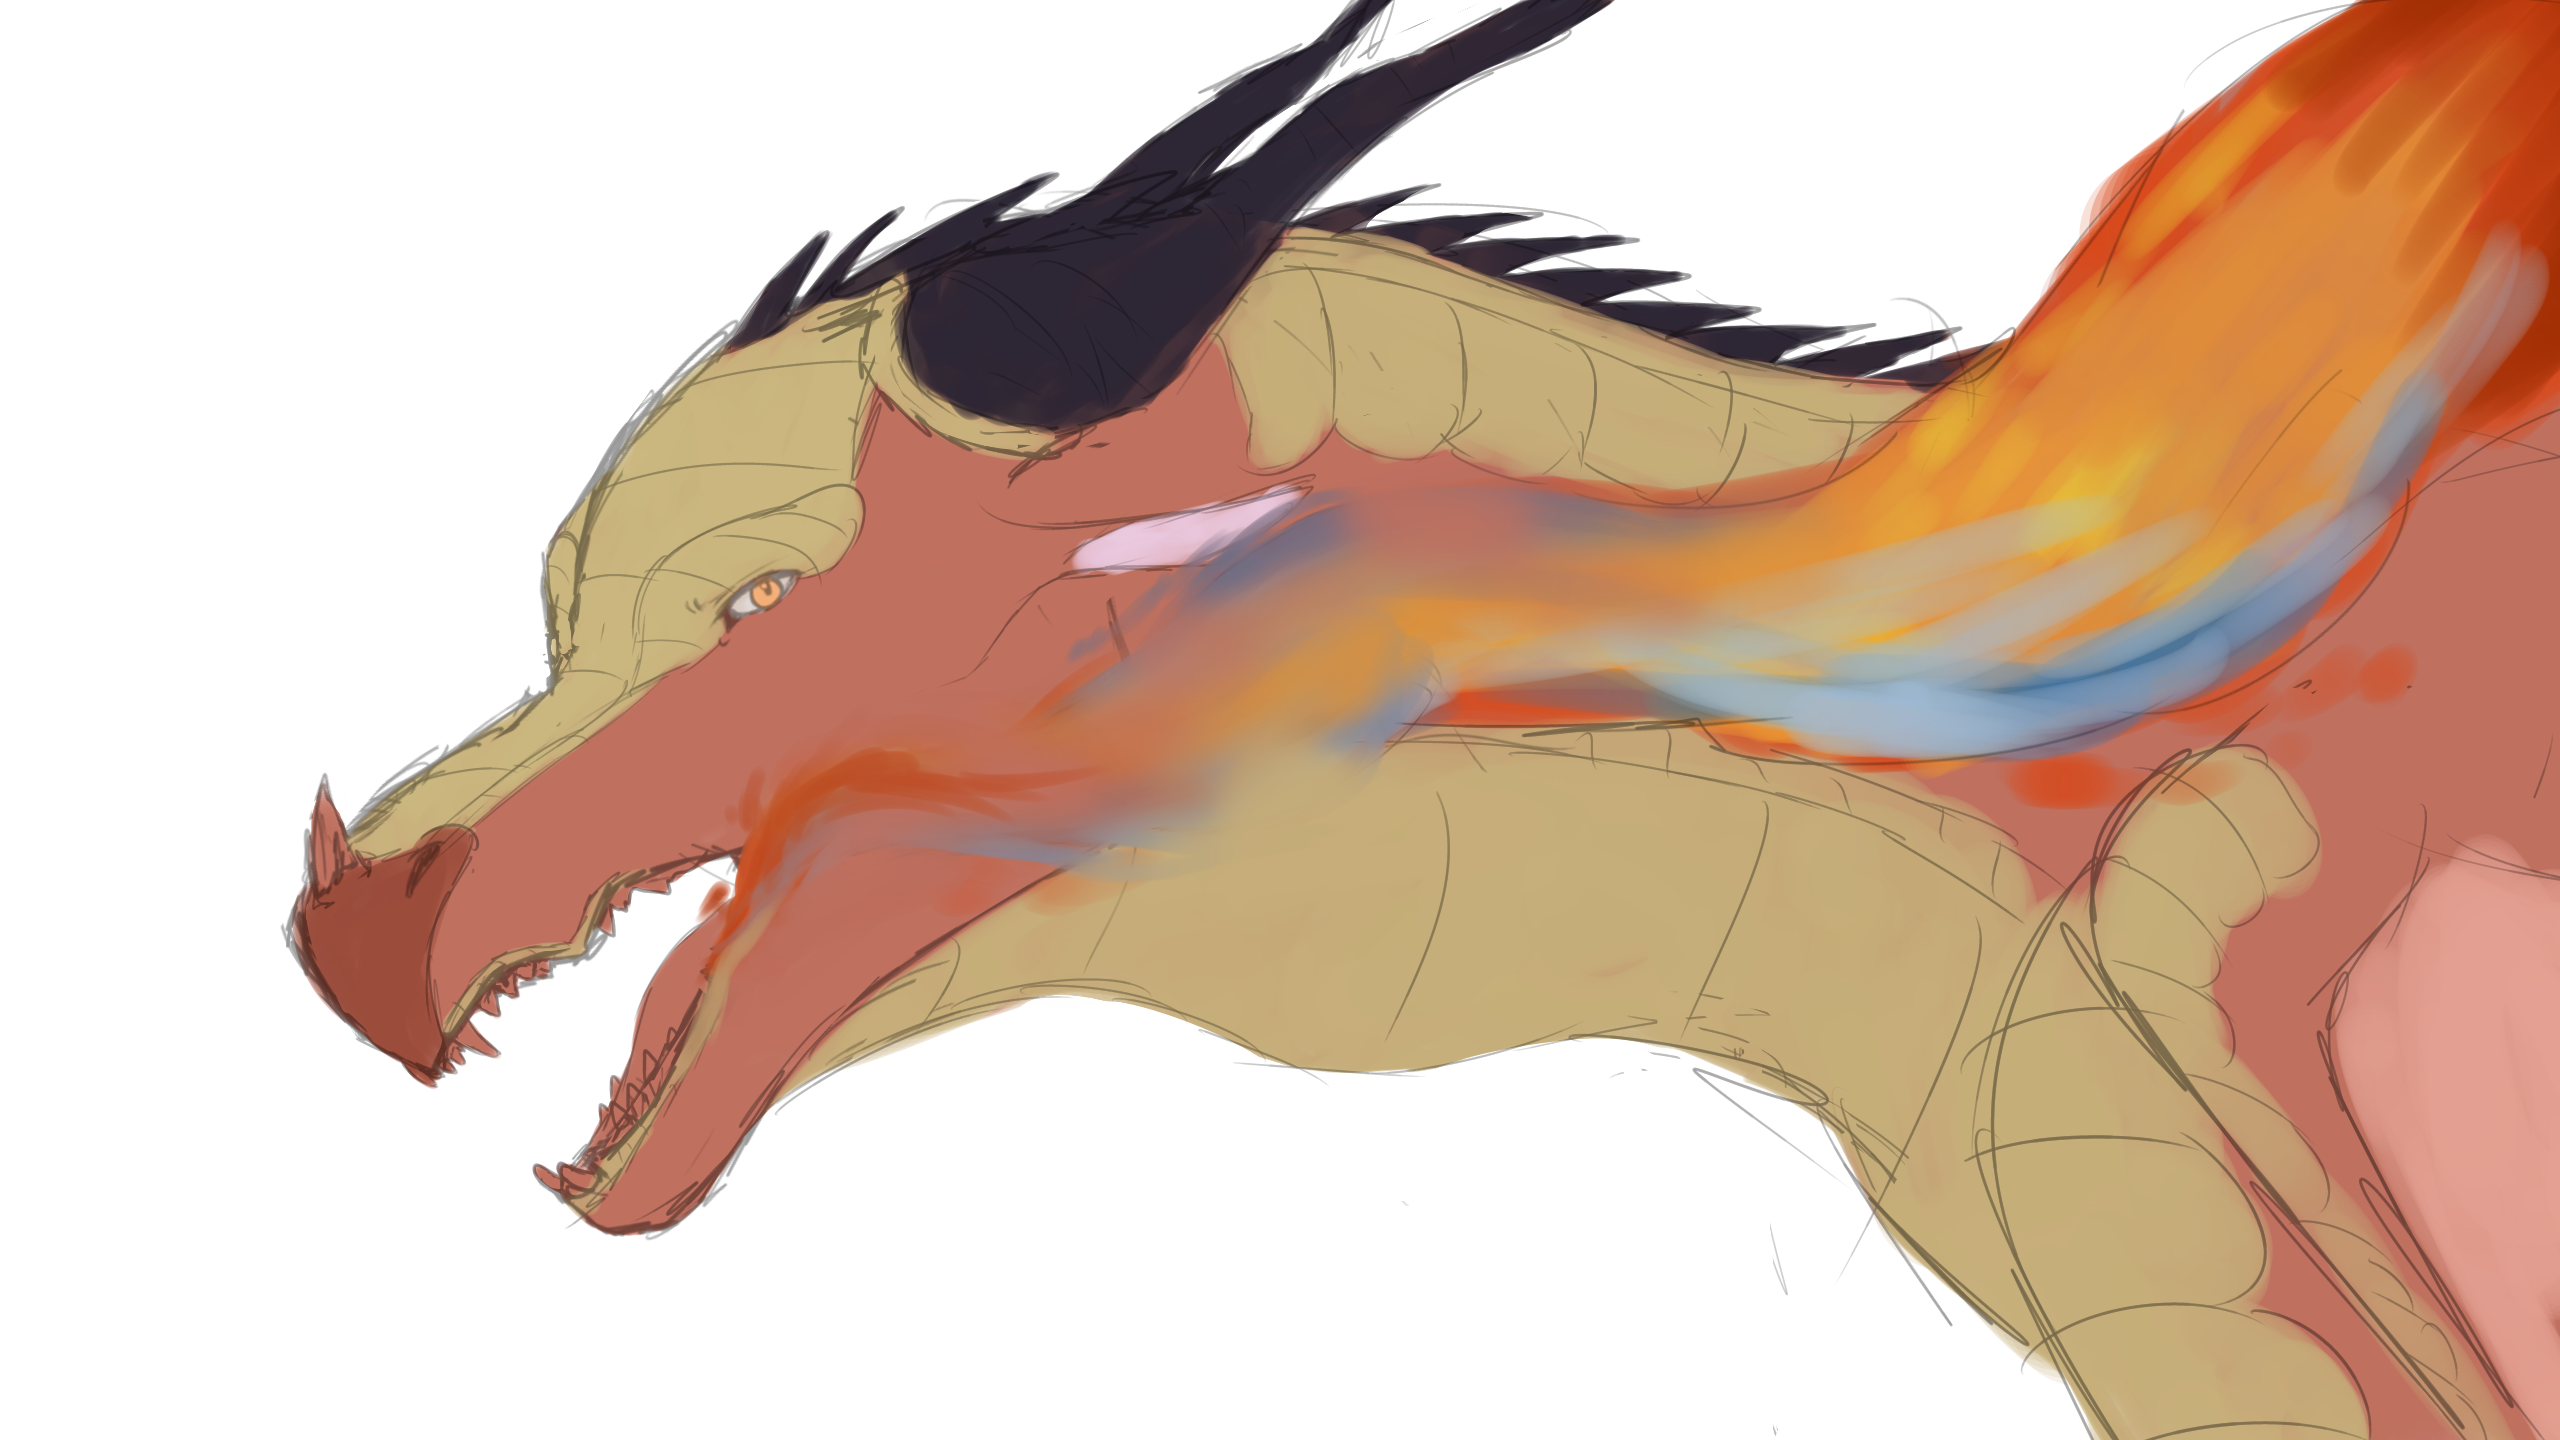 File:Dragon.png